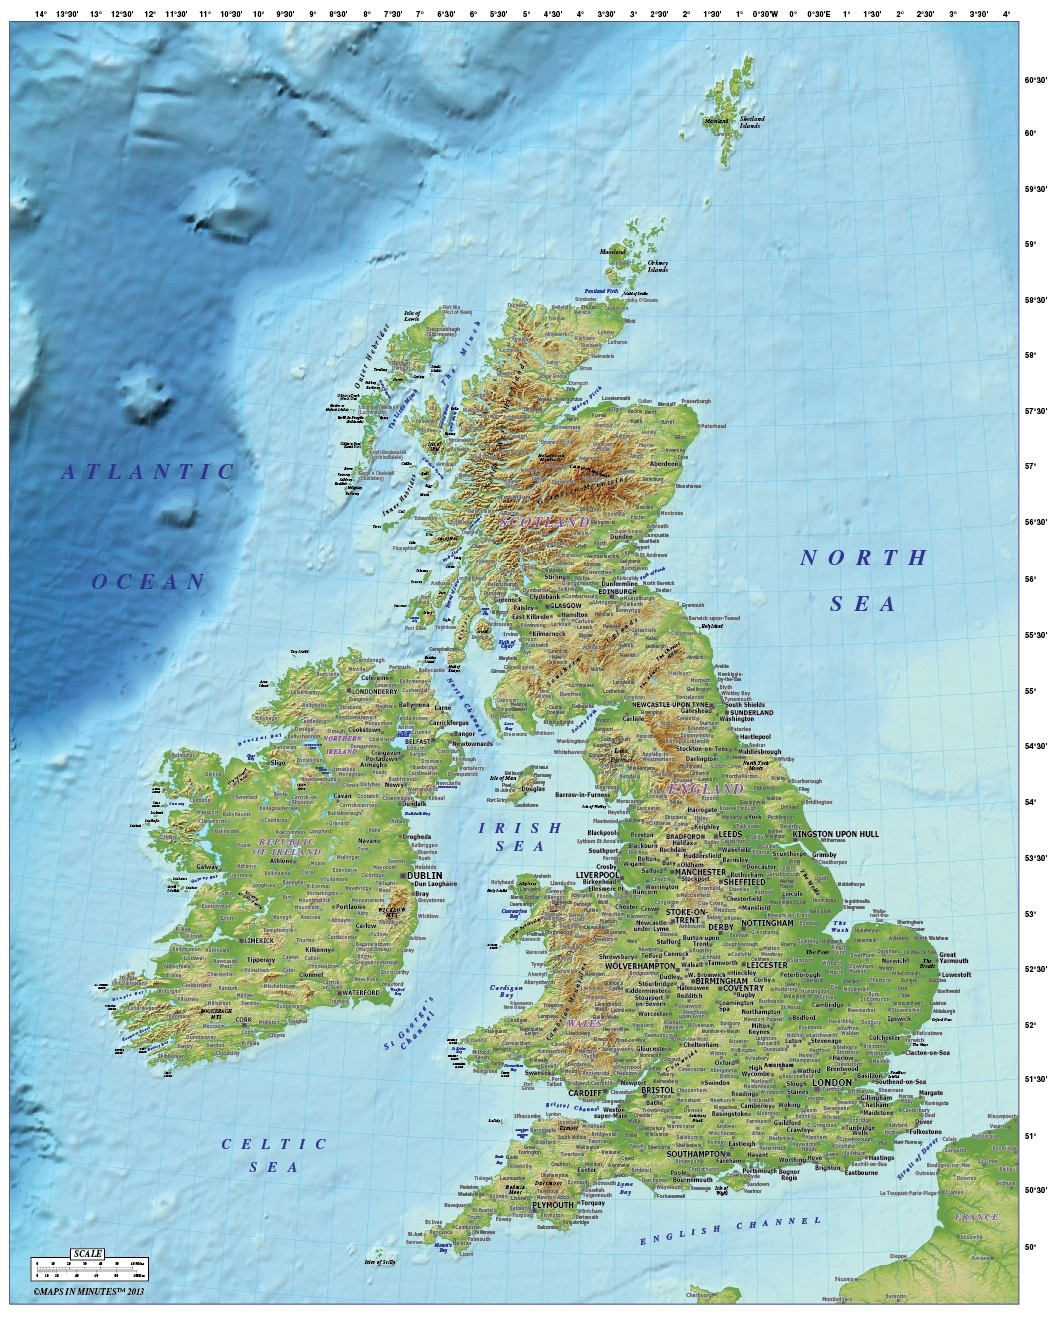 British Isles Physical Map More Views